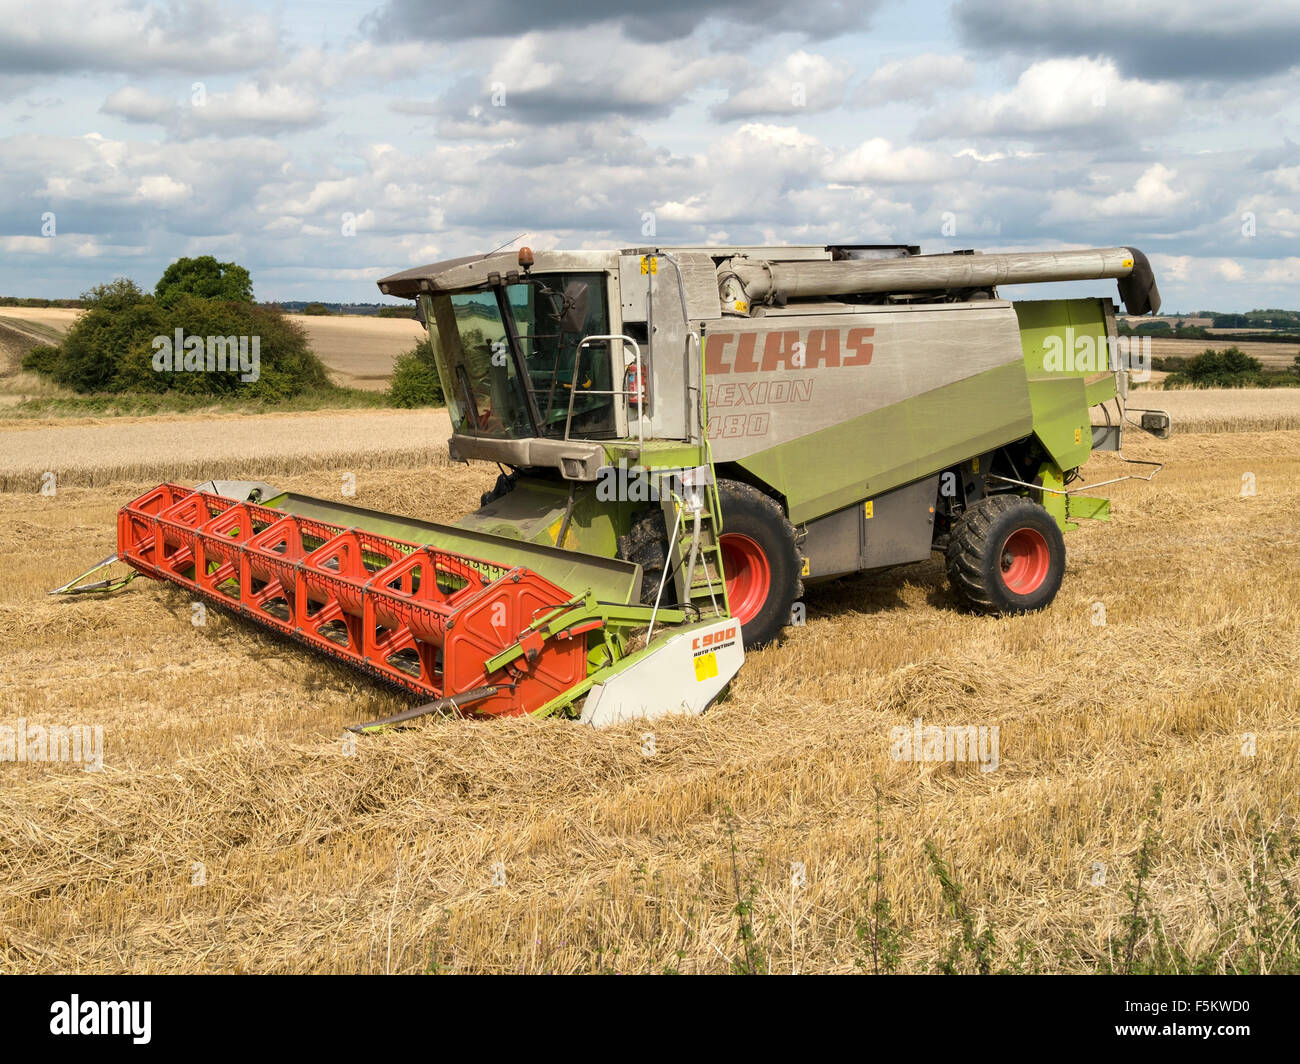 Stationary Claas Lexion 480 combined harvester in corn field in Leicestershire, England, UK. - Stock Image